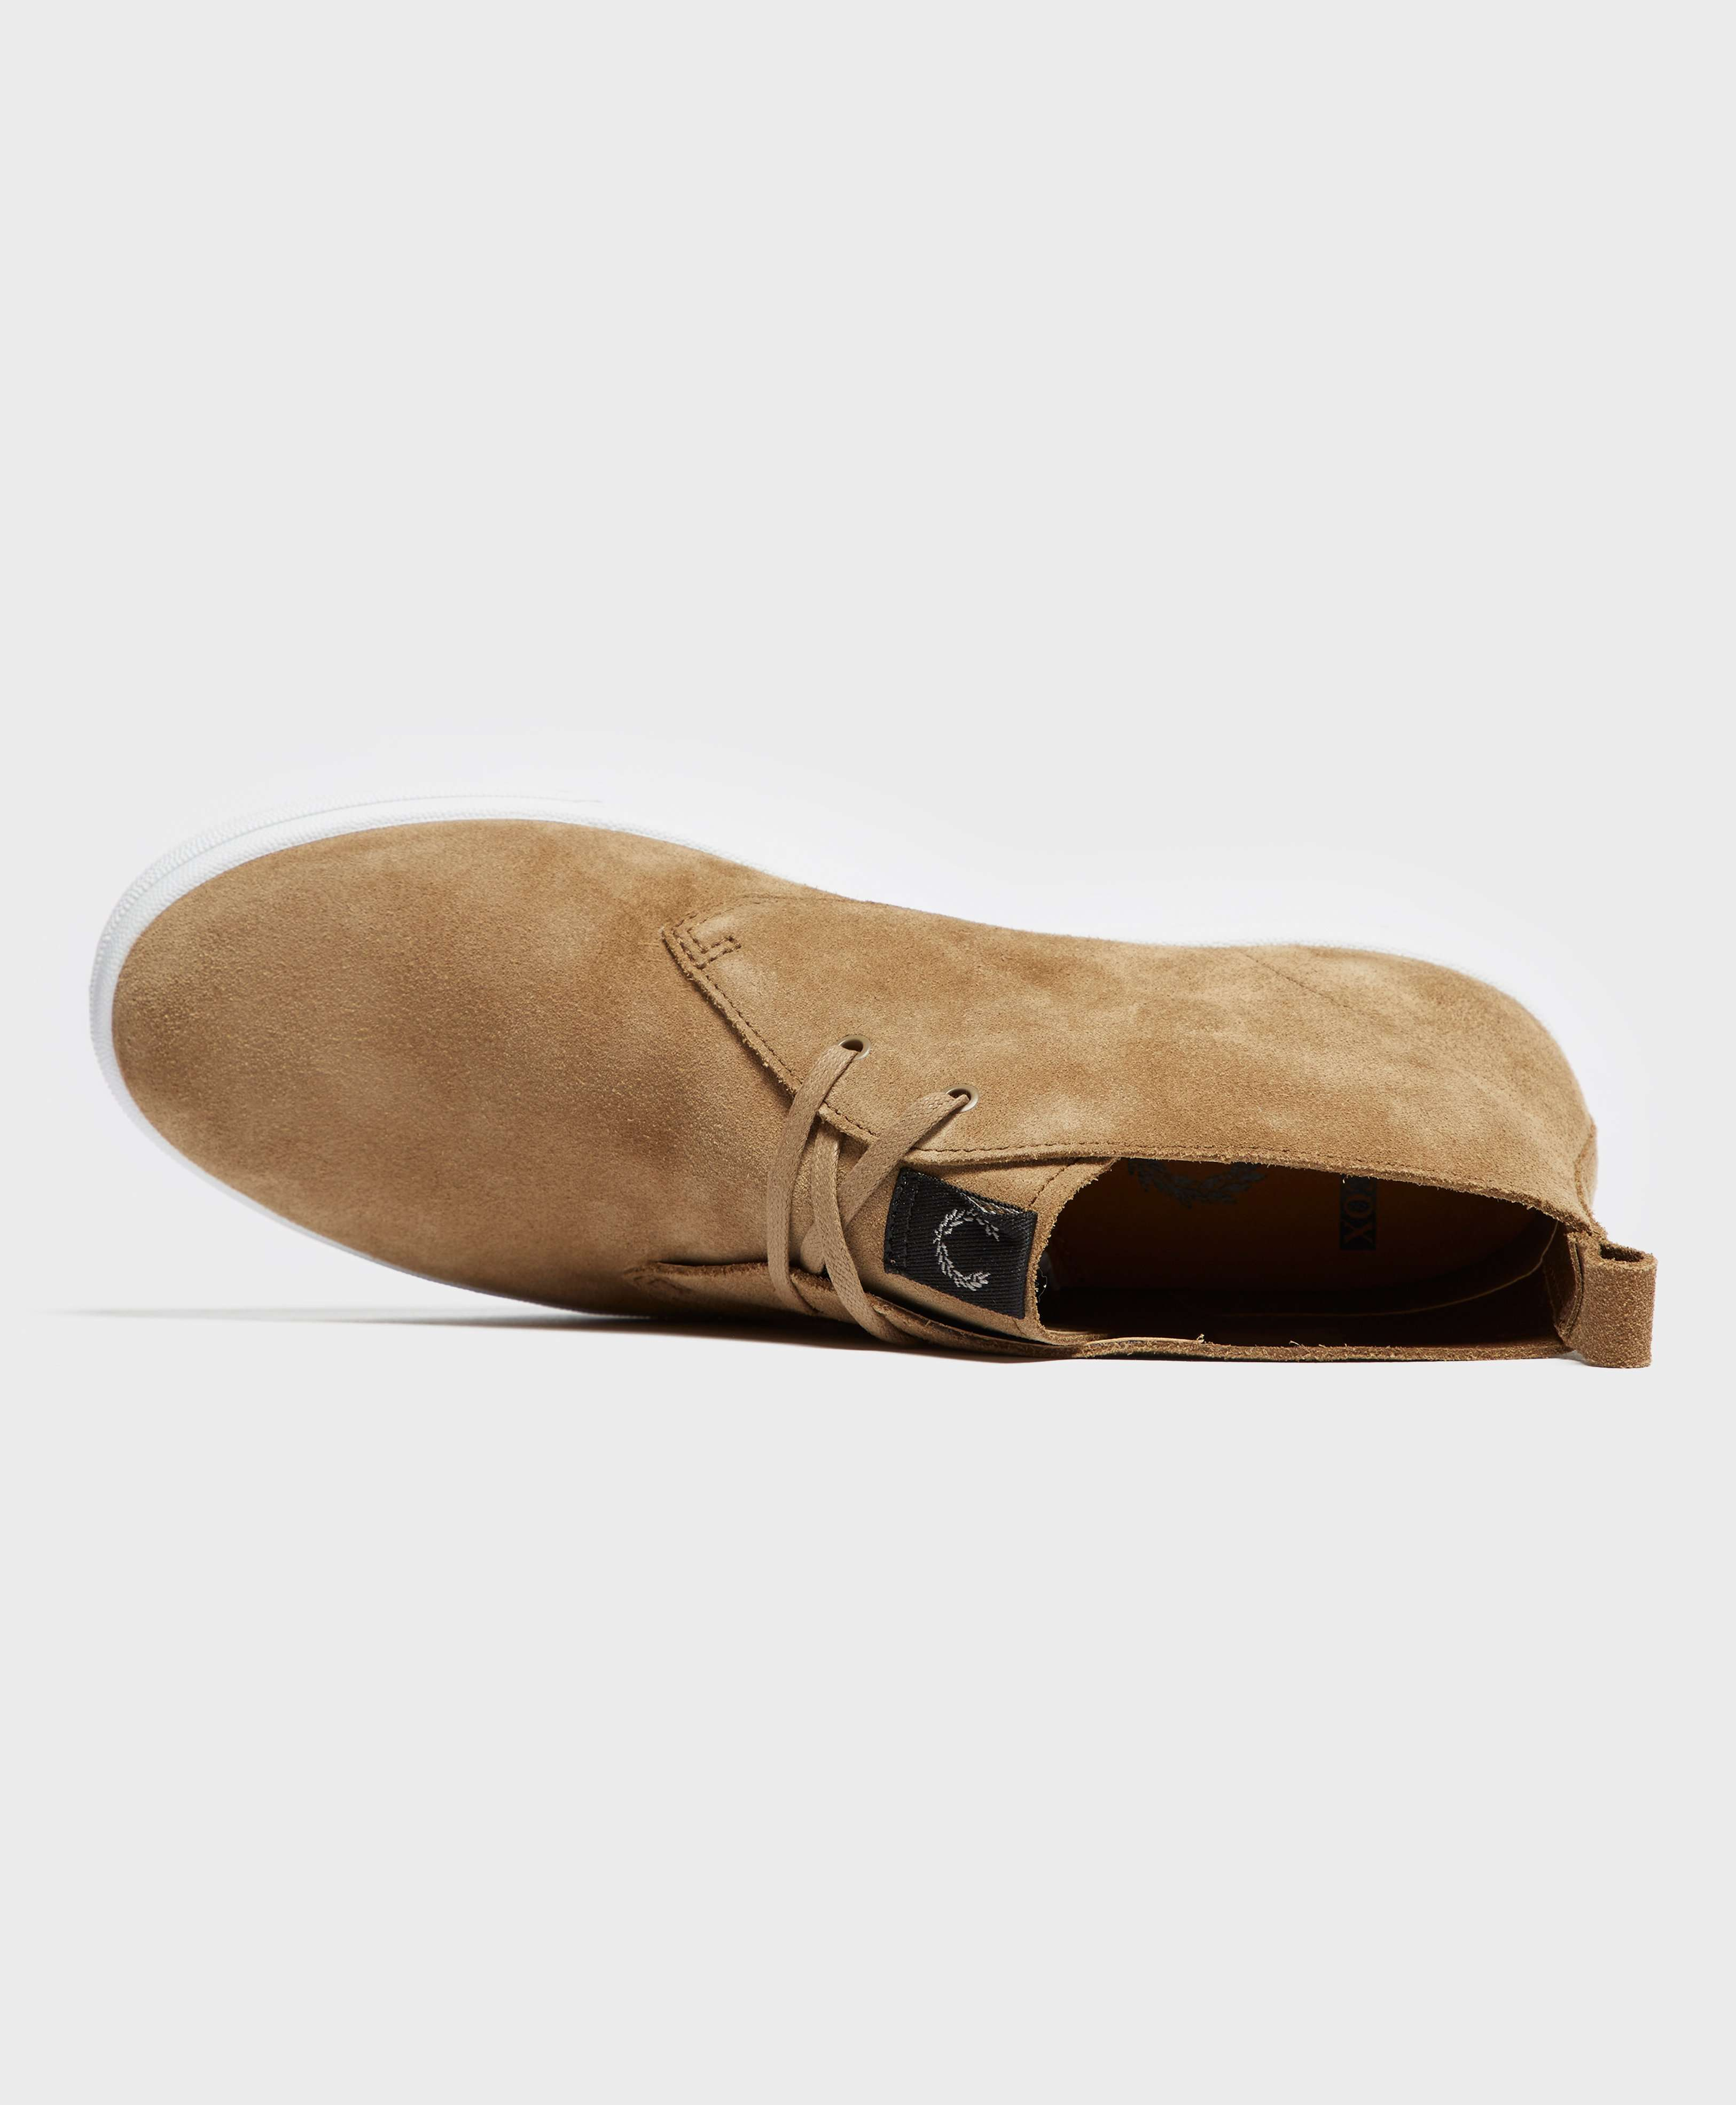 Fred Perry B721 x George Cox Chukka Suede